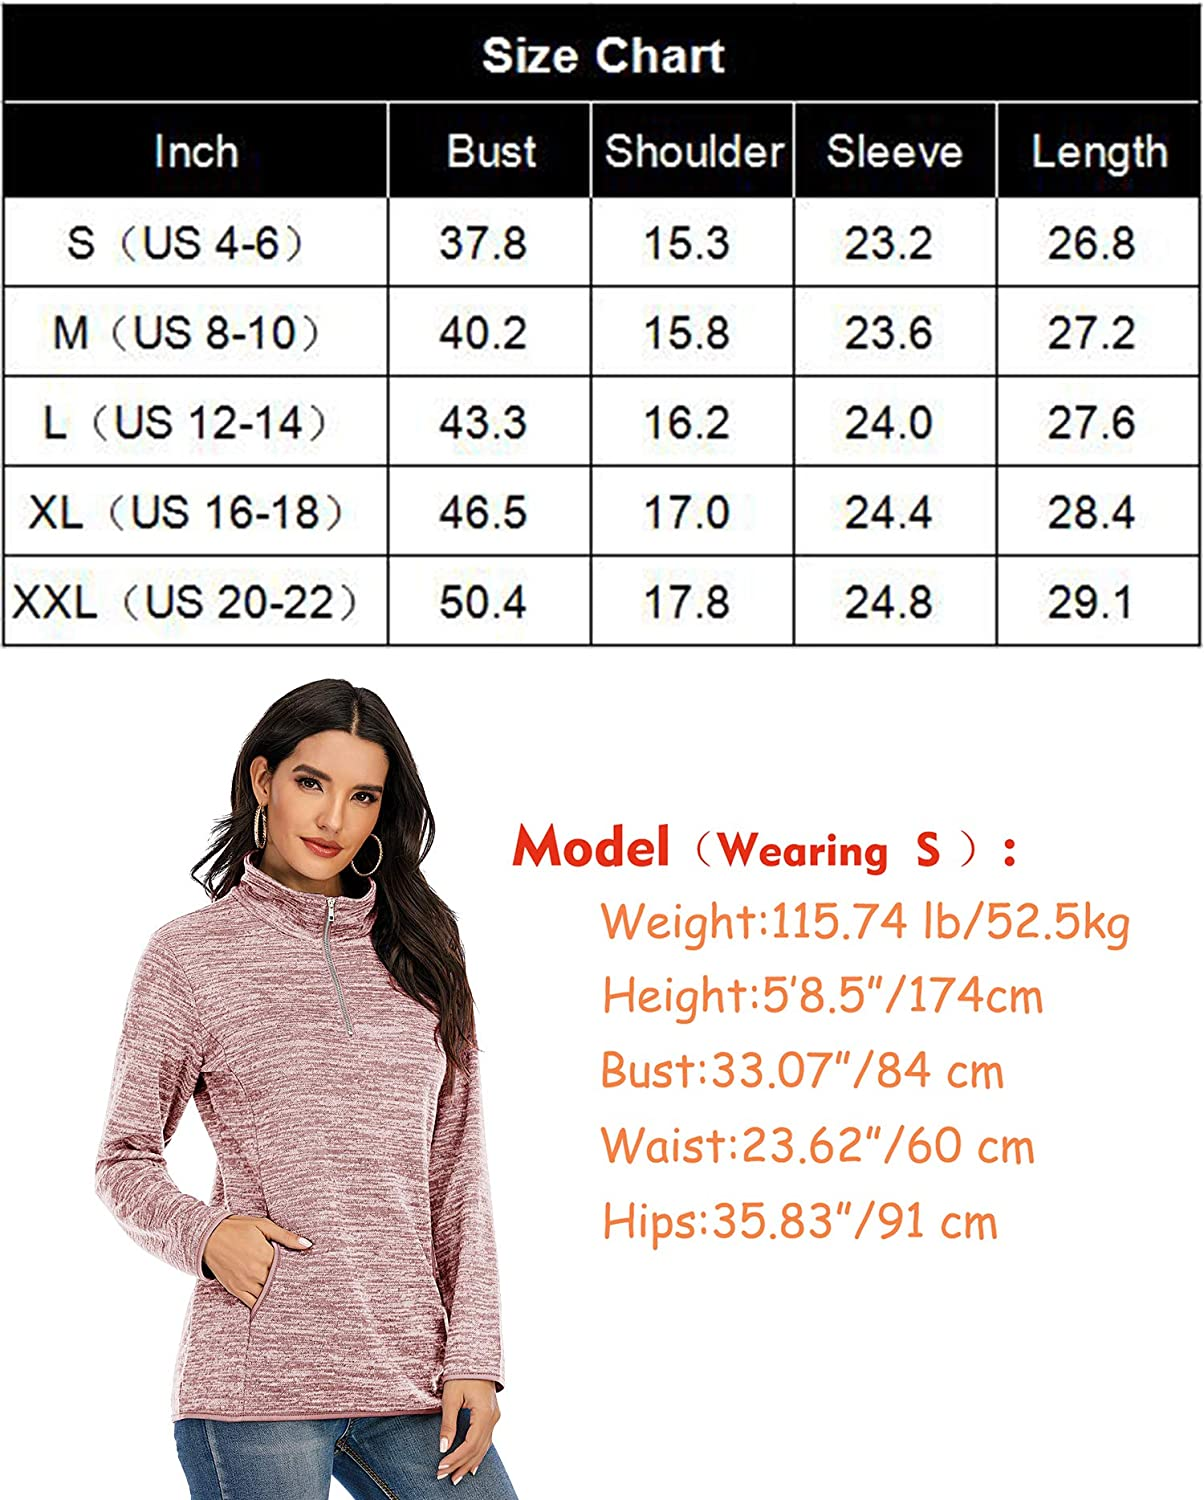 YQ.Cool Go Sweatshirts for Women 1//4 Zip Pullover Soft Comfy Lightweight Long Sleeve Shirts Tops with Pockets S-XXL